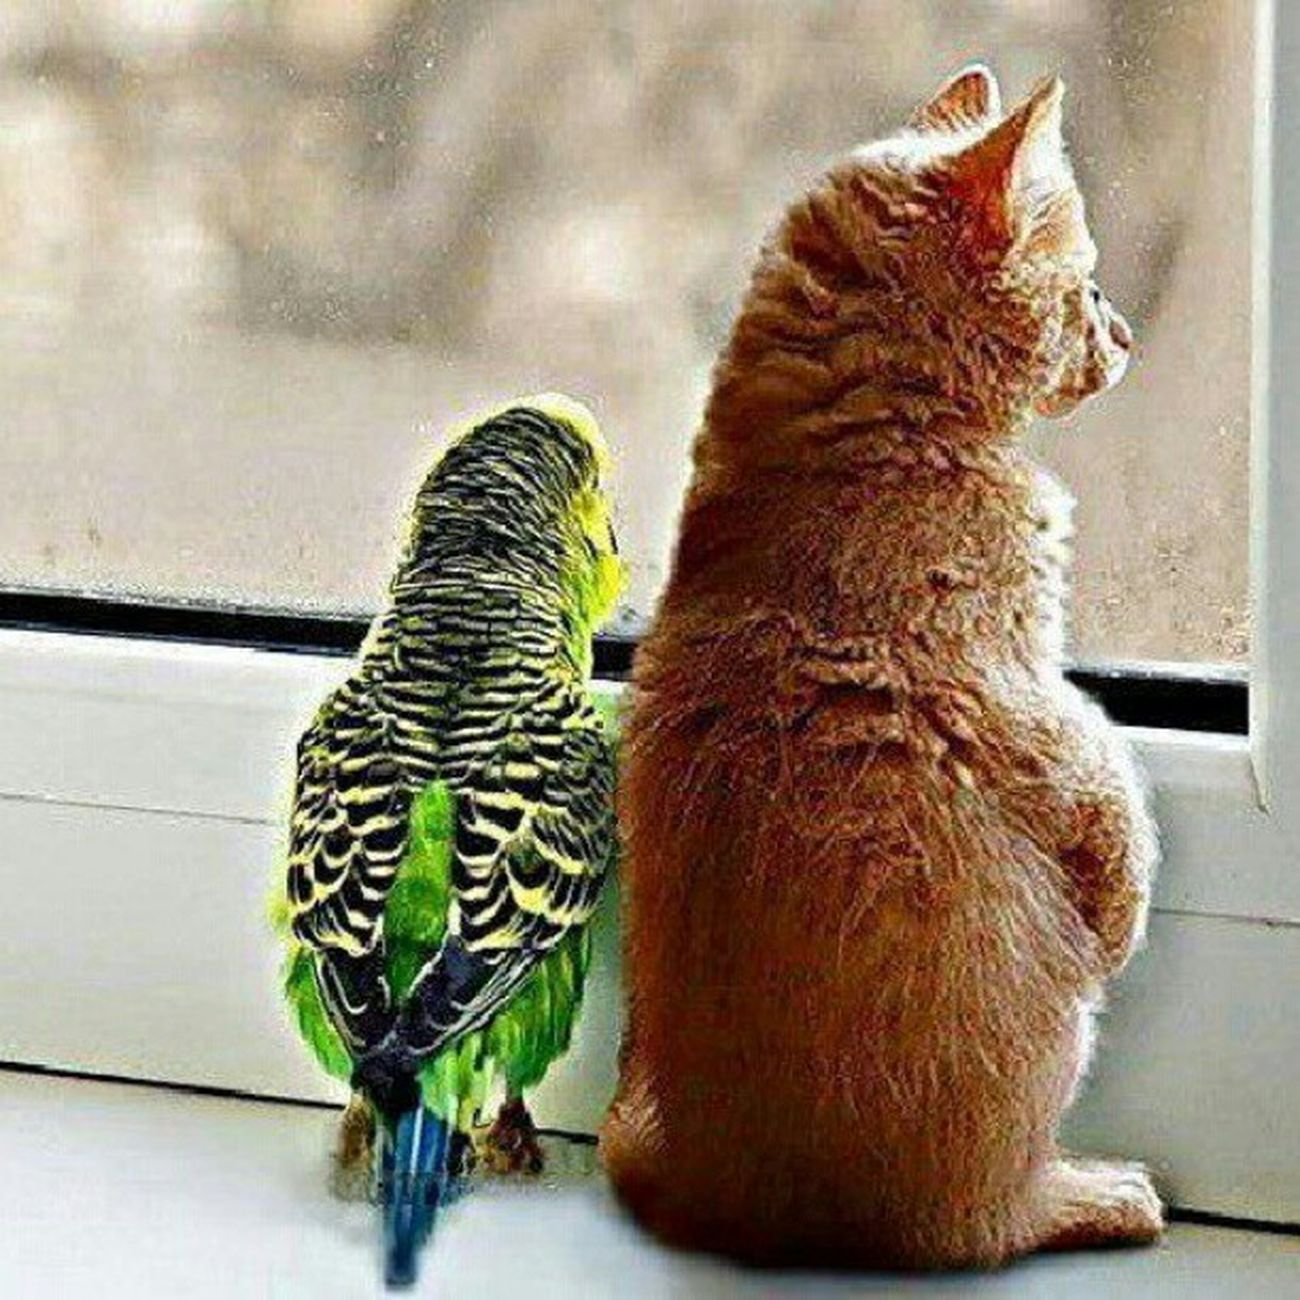 Bird Underlat Animal Cat cute forest sun summer window